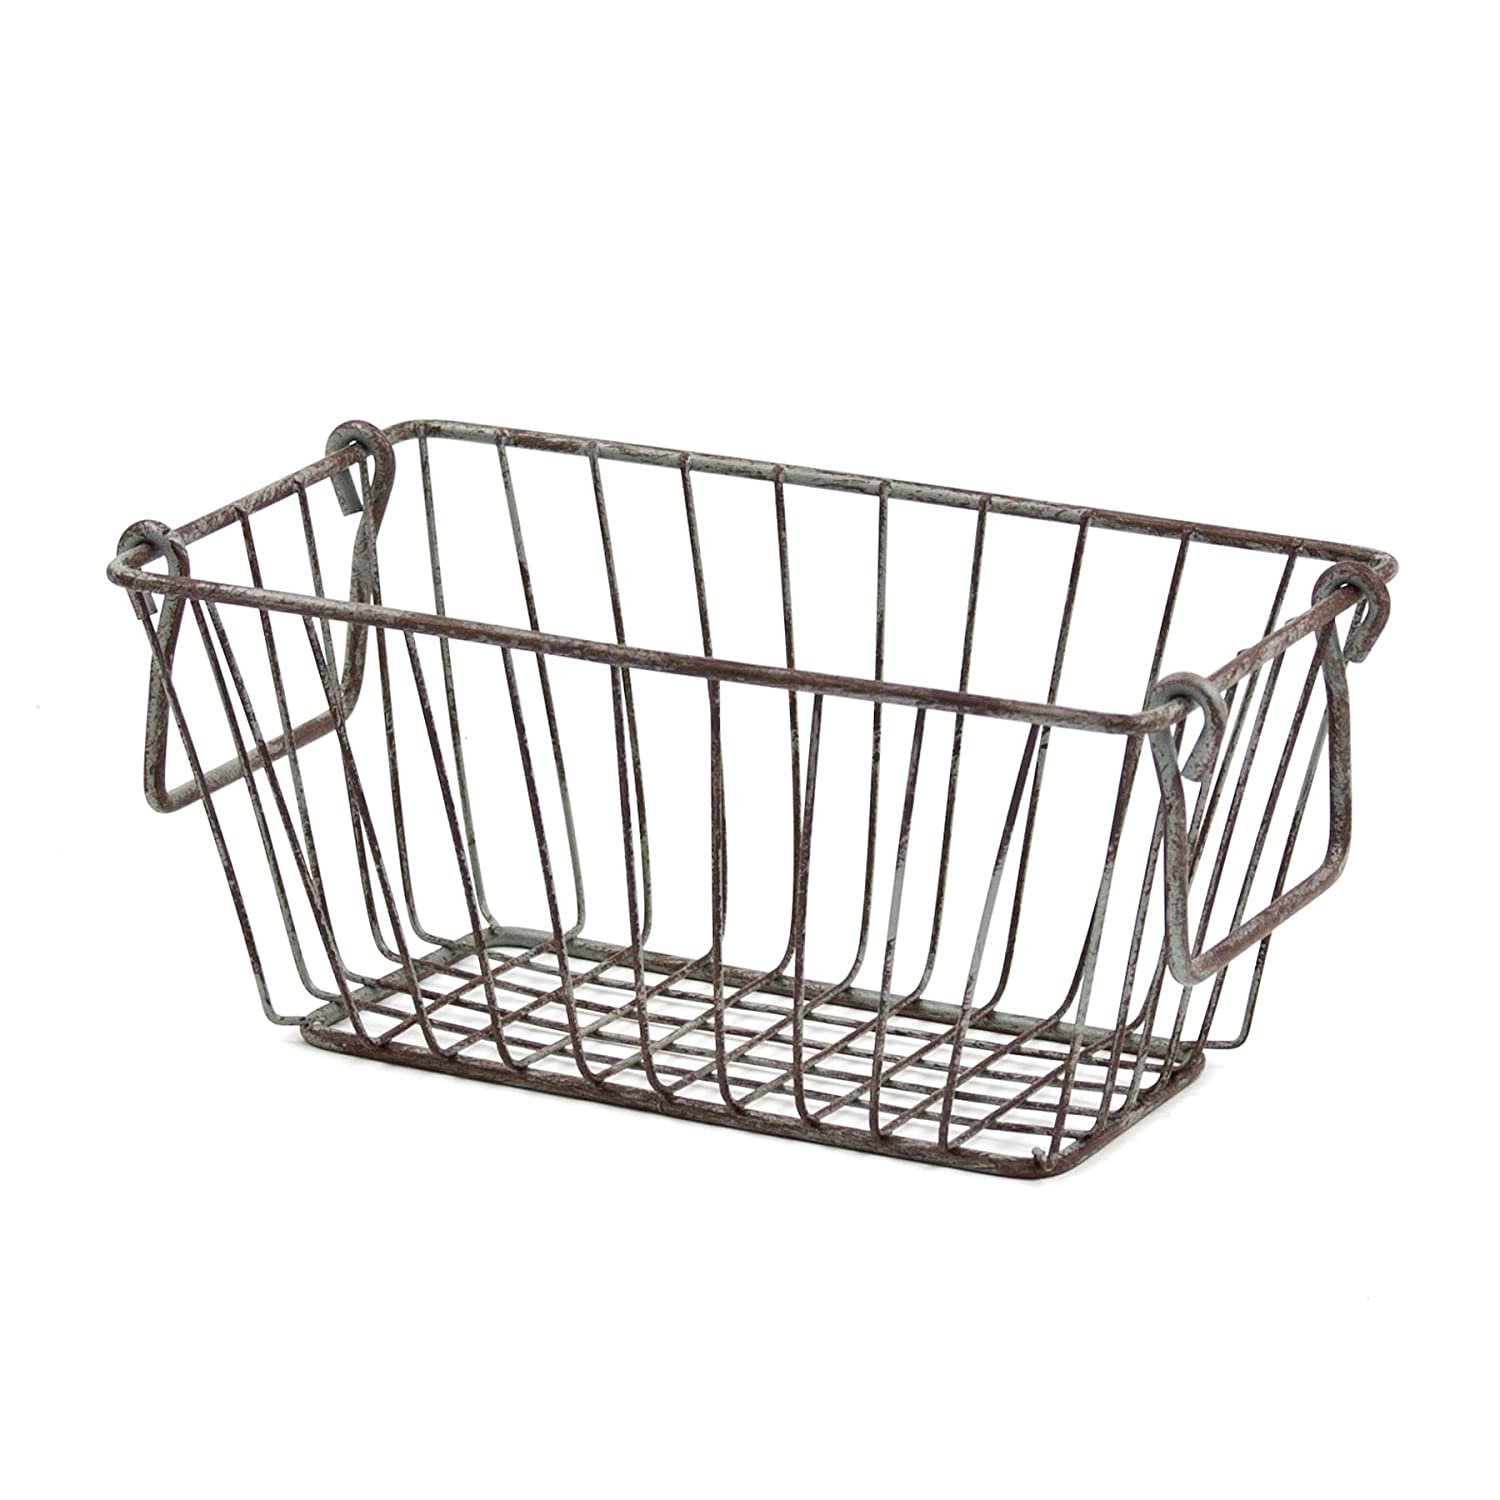 Amazon.com: Skalny Rectangle Wire Storage Container, 11.5 x 8.5 x ...